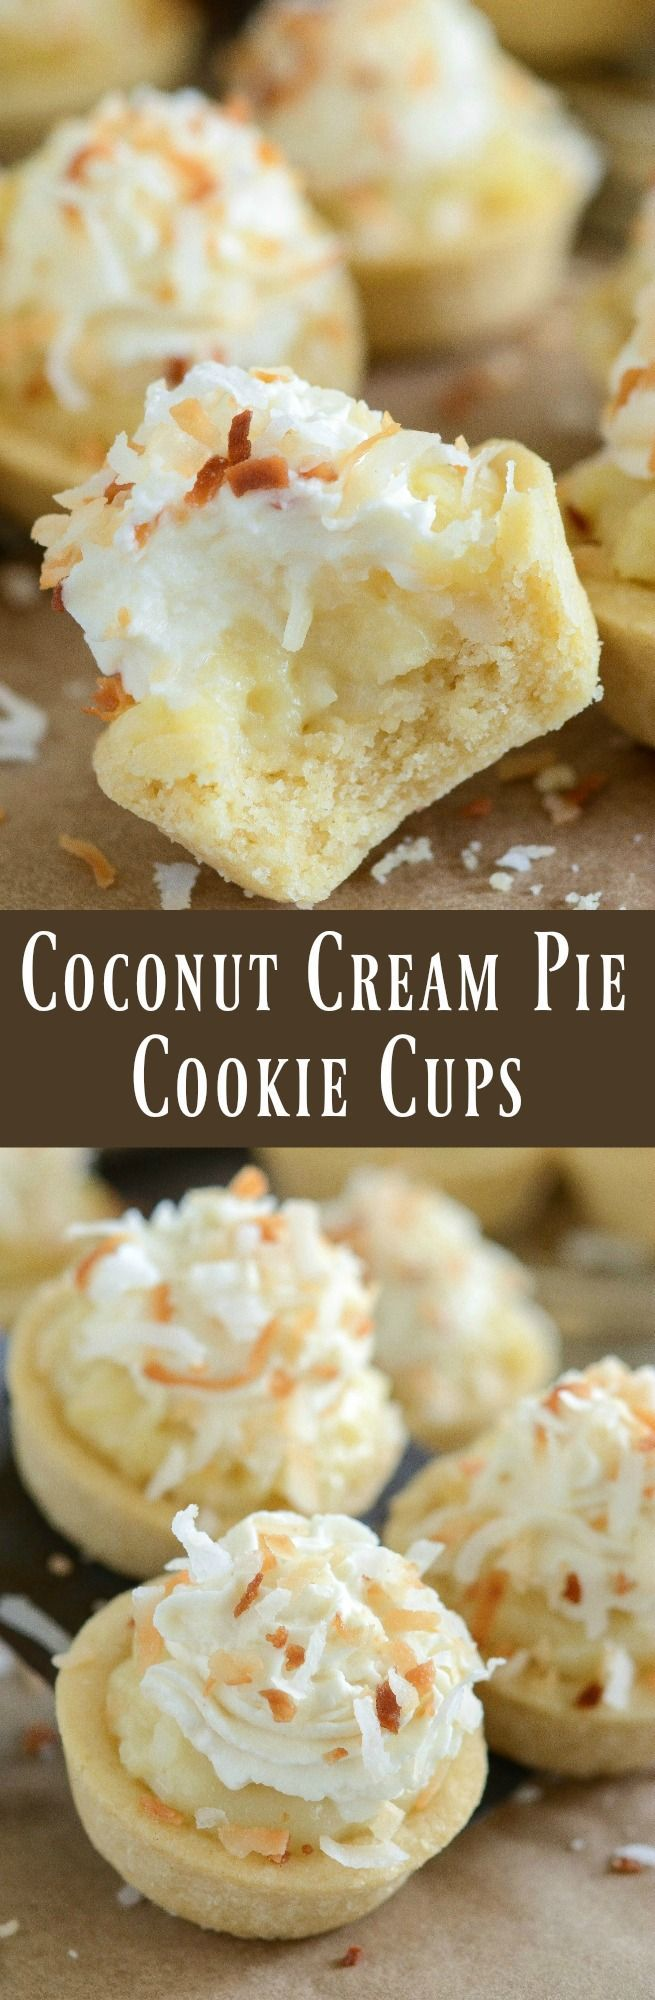 Coconut Cream Pie Cookie Cups - the perfect bite size combination of two classic…